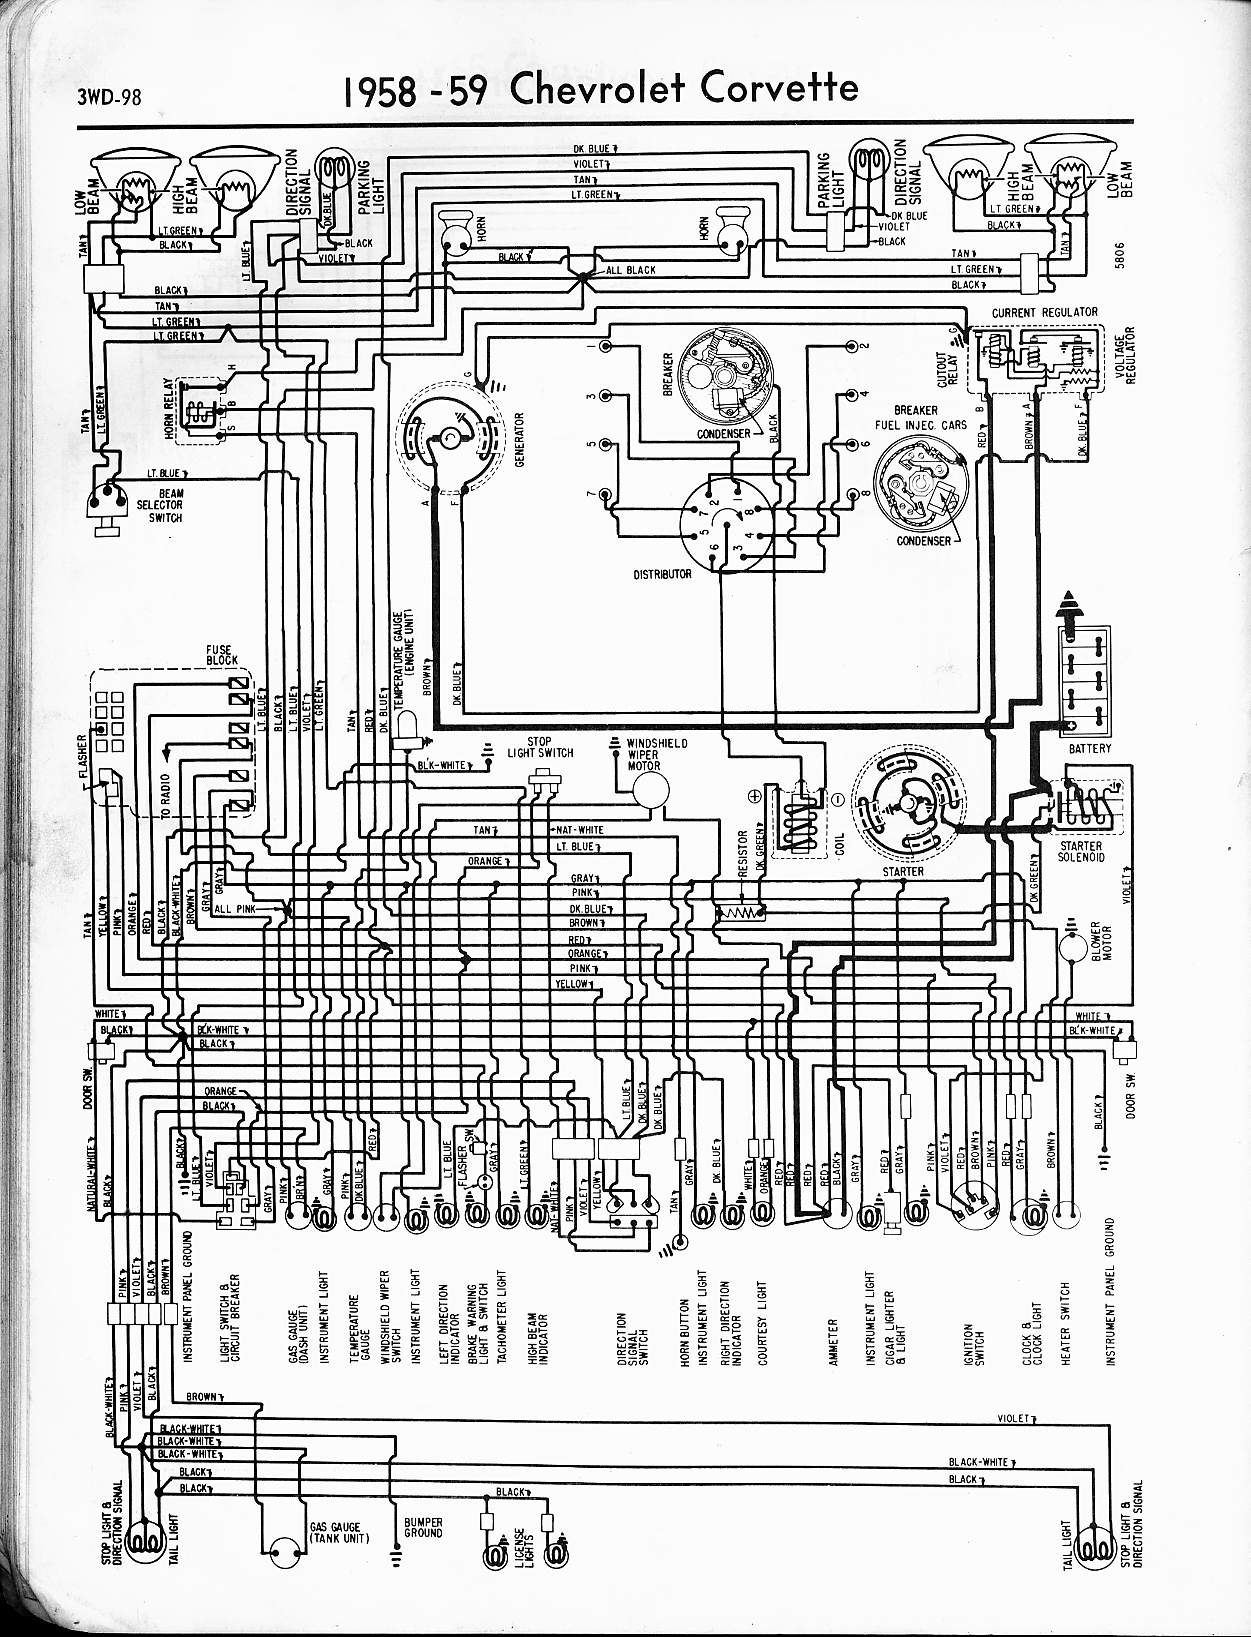 MWireChev58_3WD 098 1966 chevrolet wiring diagram wiring diagram schematic name